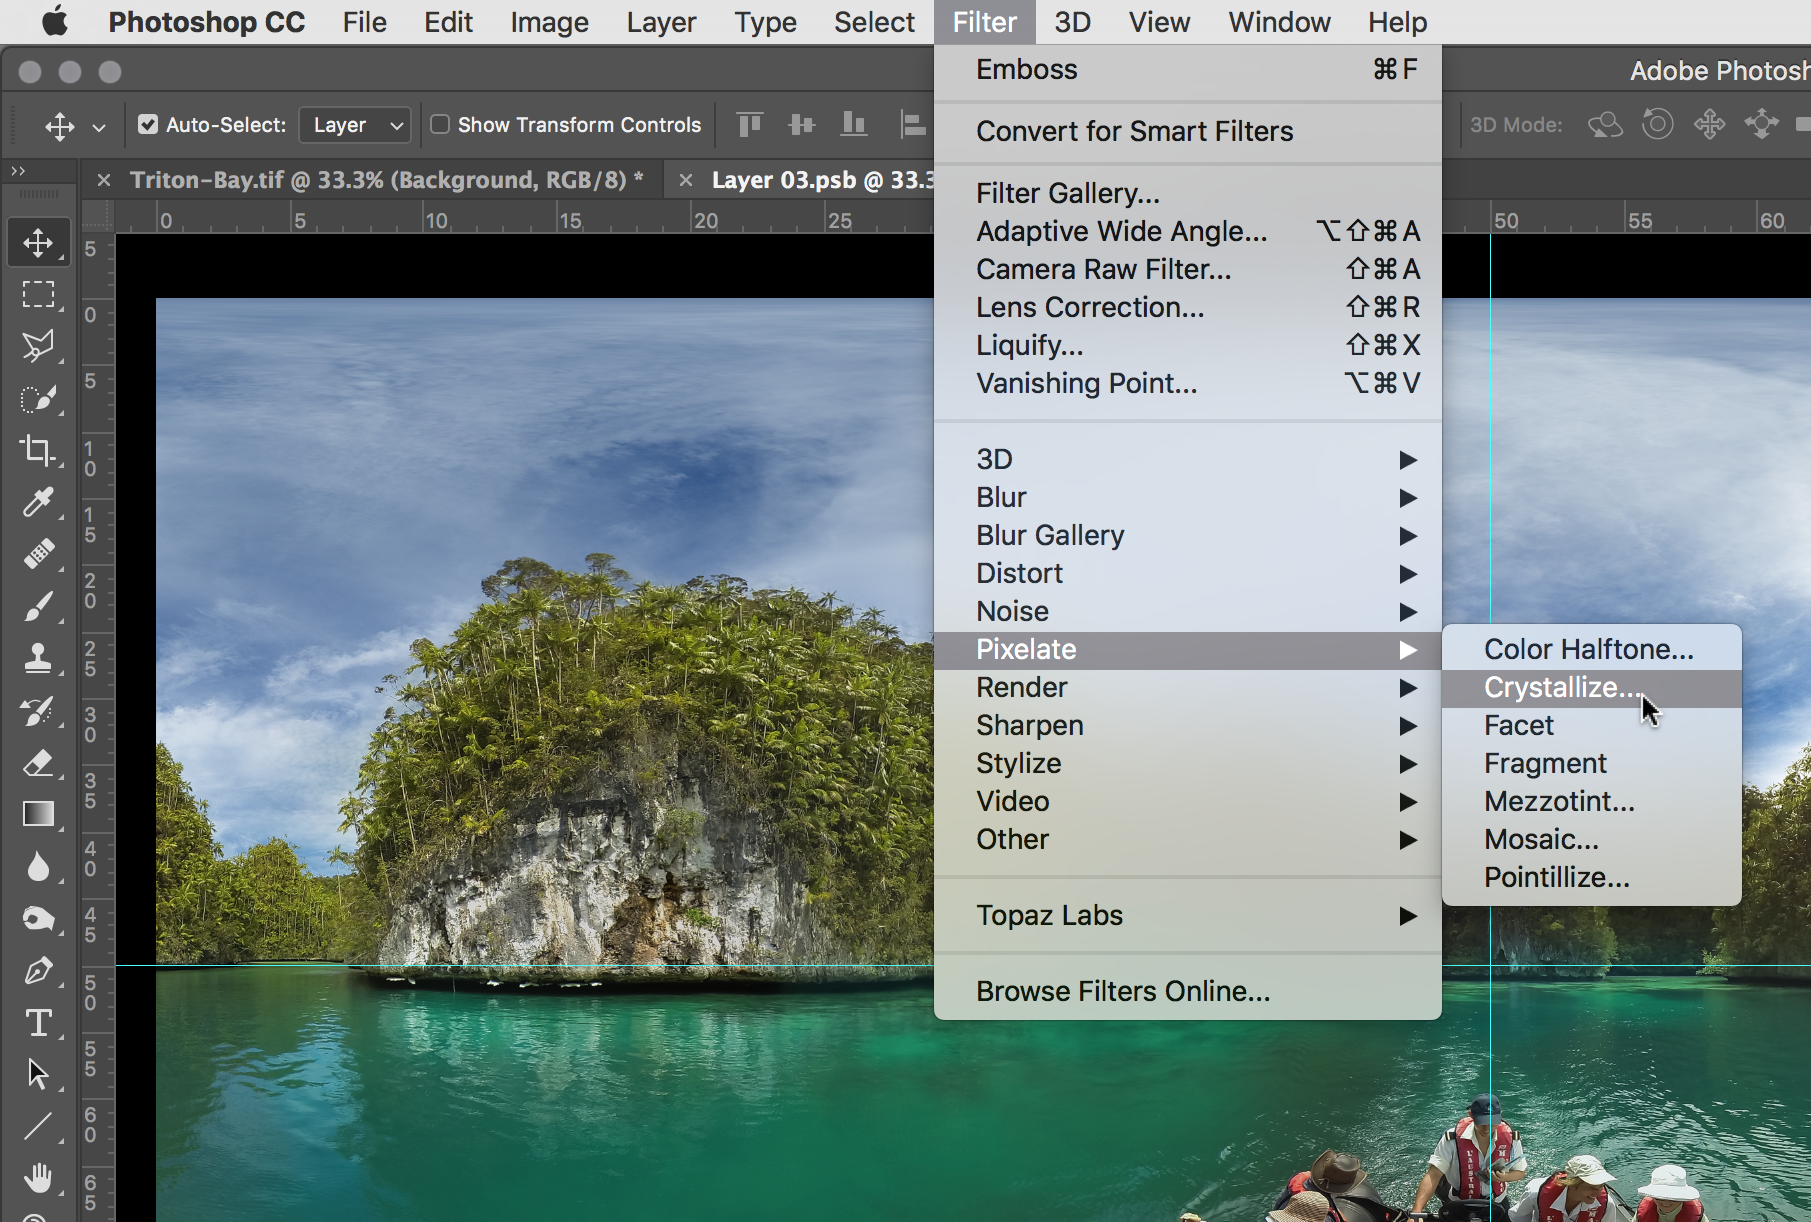 Image #3 -Selecting the Filter